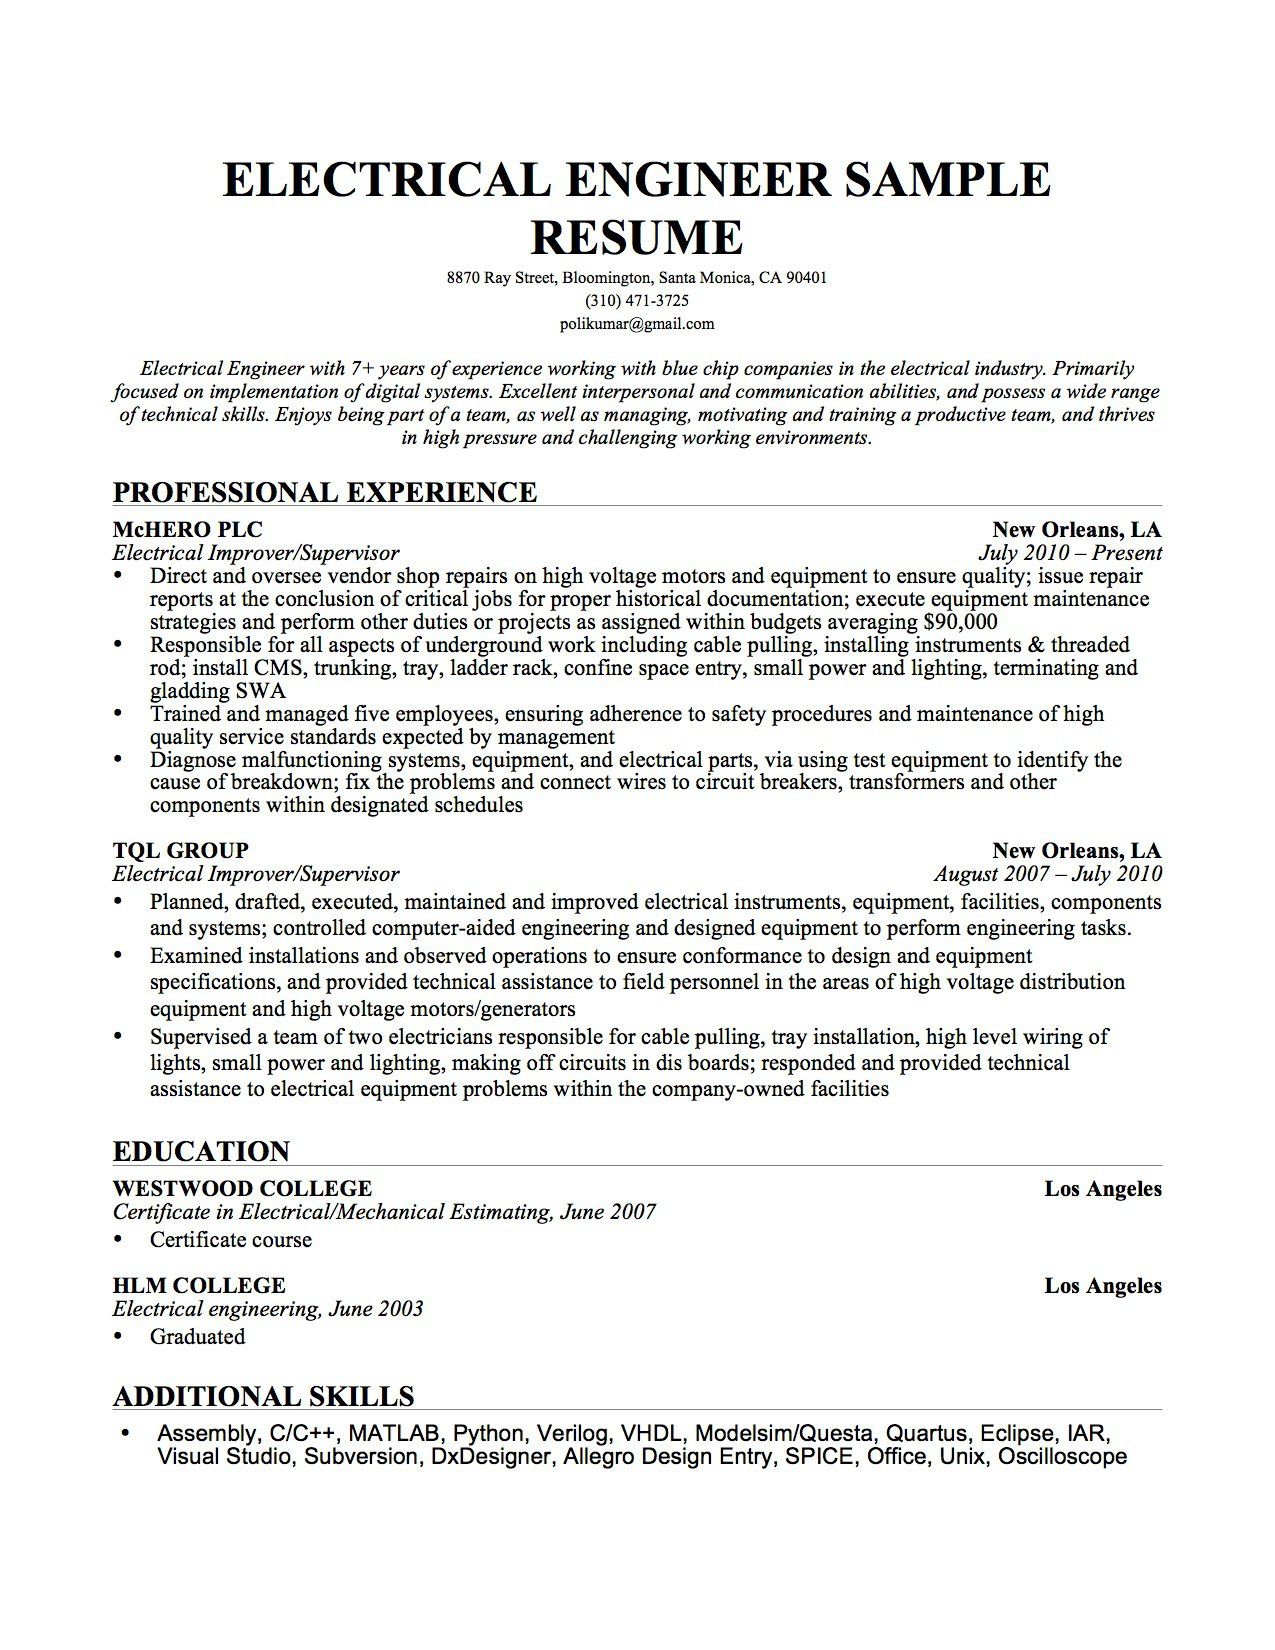 engineering resume cover letter samplesfirst restore instance engineering resume cover letter samplesfirst restore instance no work save fragment instance android